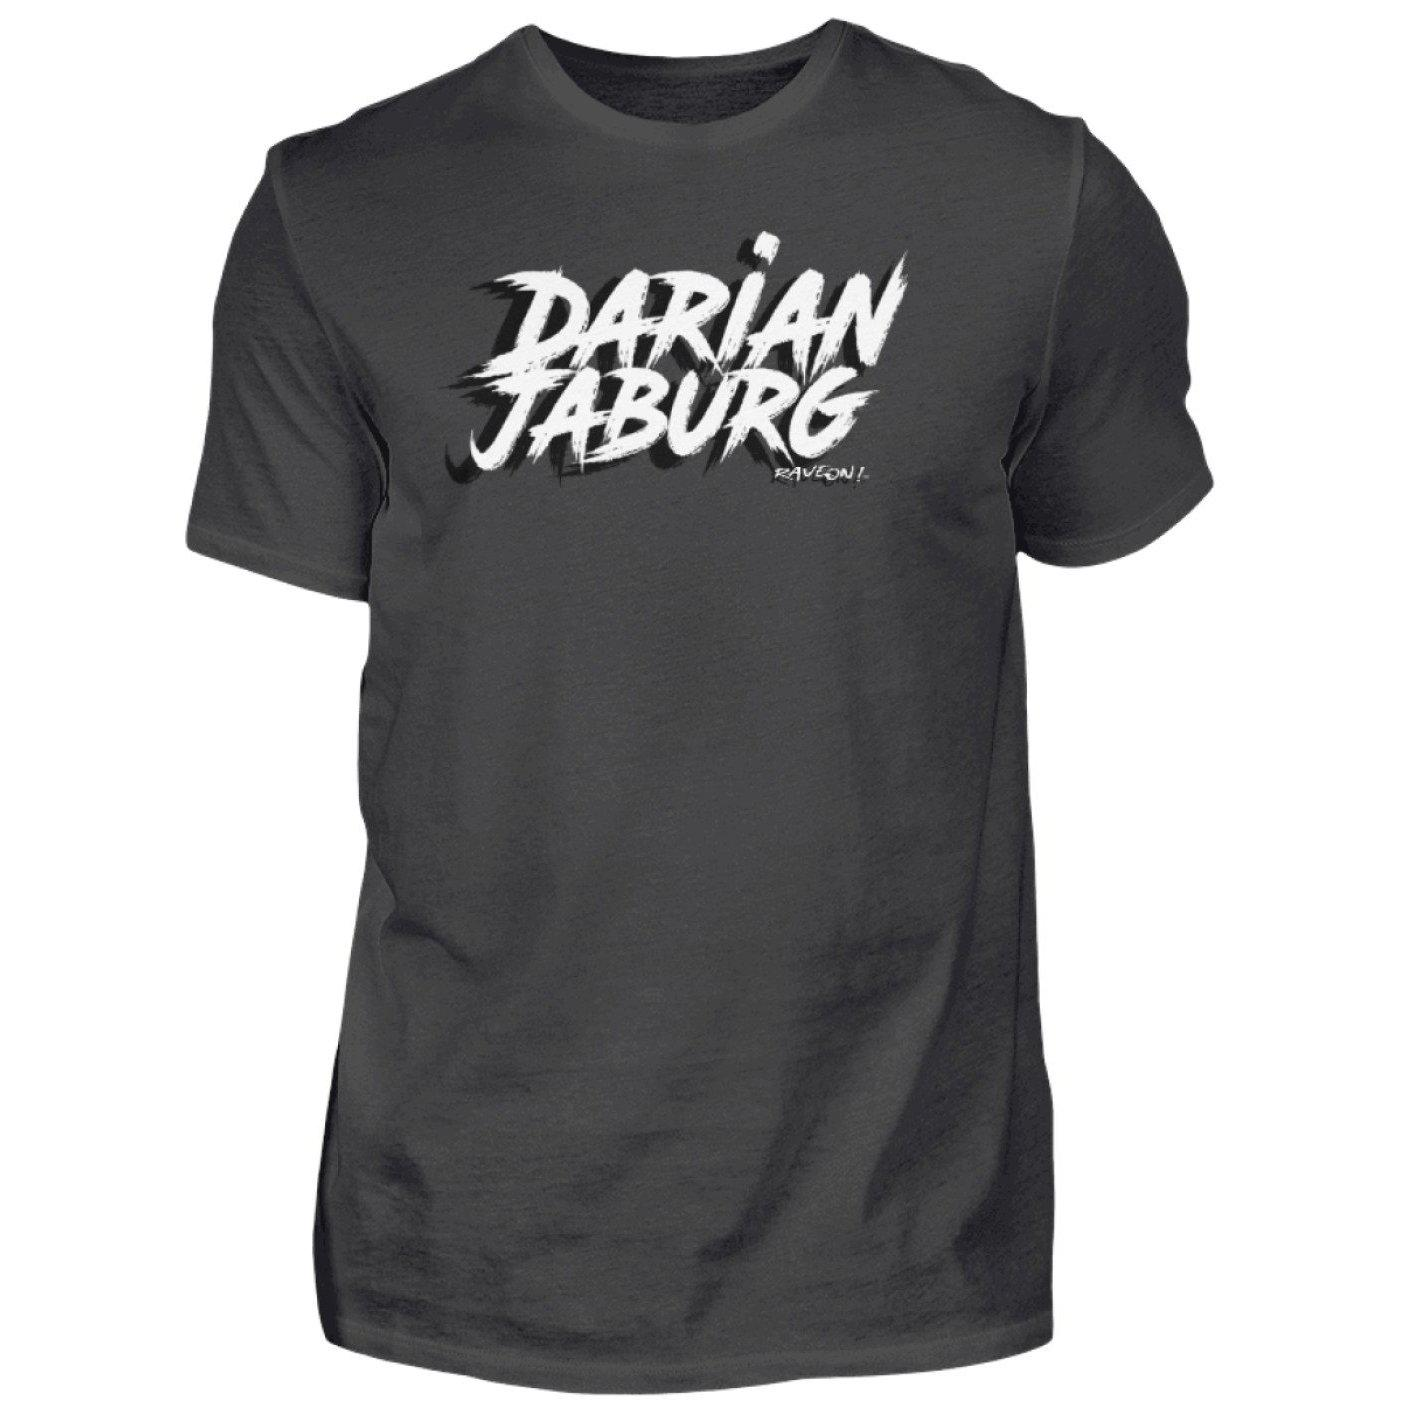 Darian Jaburg - BS Rec.Black - Rave On!® - Herren Premiumshirt Herren Premium Shirt Graphite (Solid) / S - Rave On!® der Club & Techno Szene Shop für Coole Junge Mode Streetwear Style & Fashion Outfits + Sexy Festival 420 Stuff